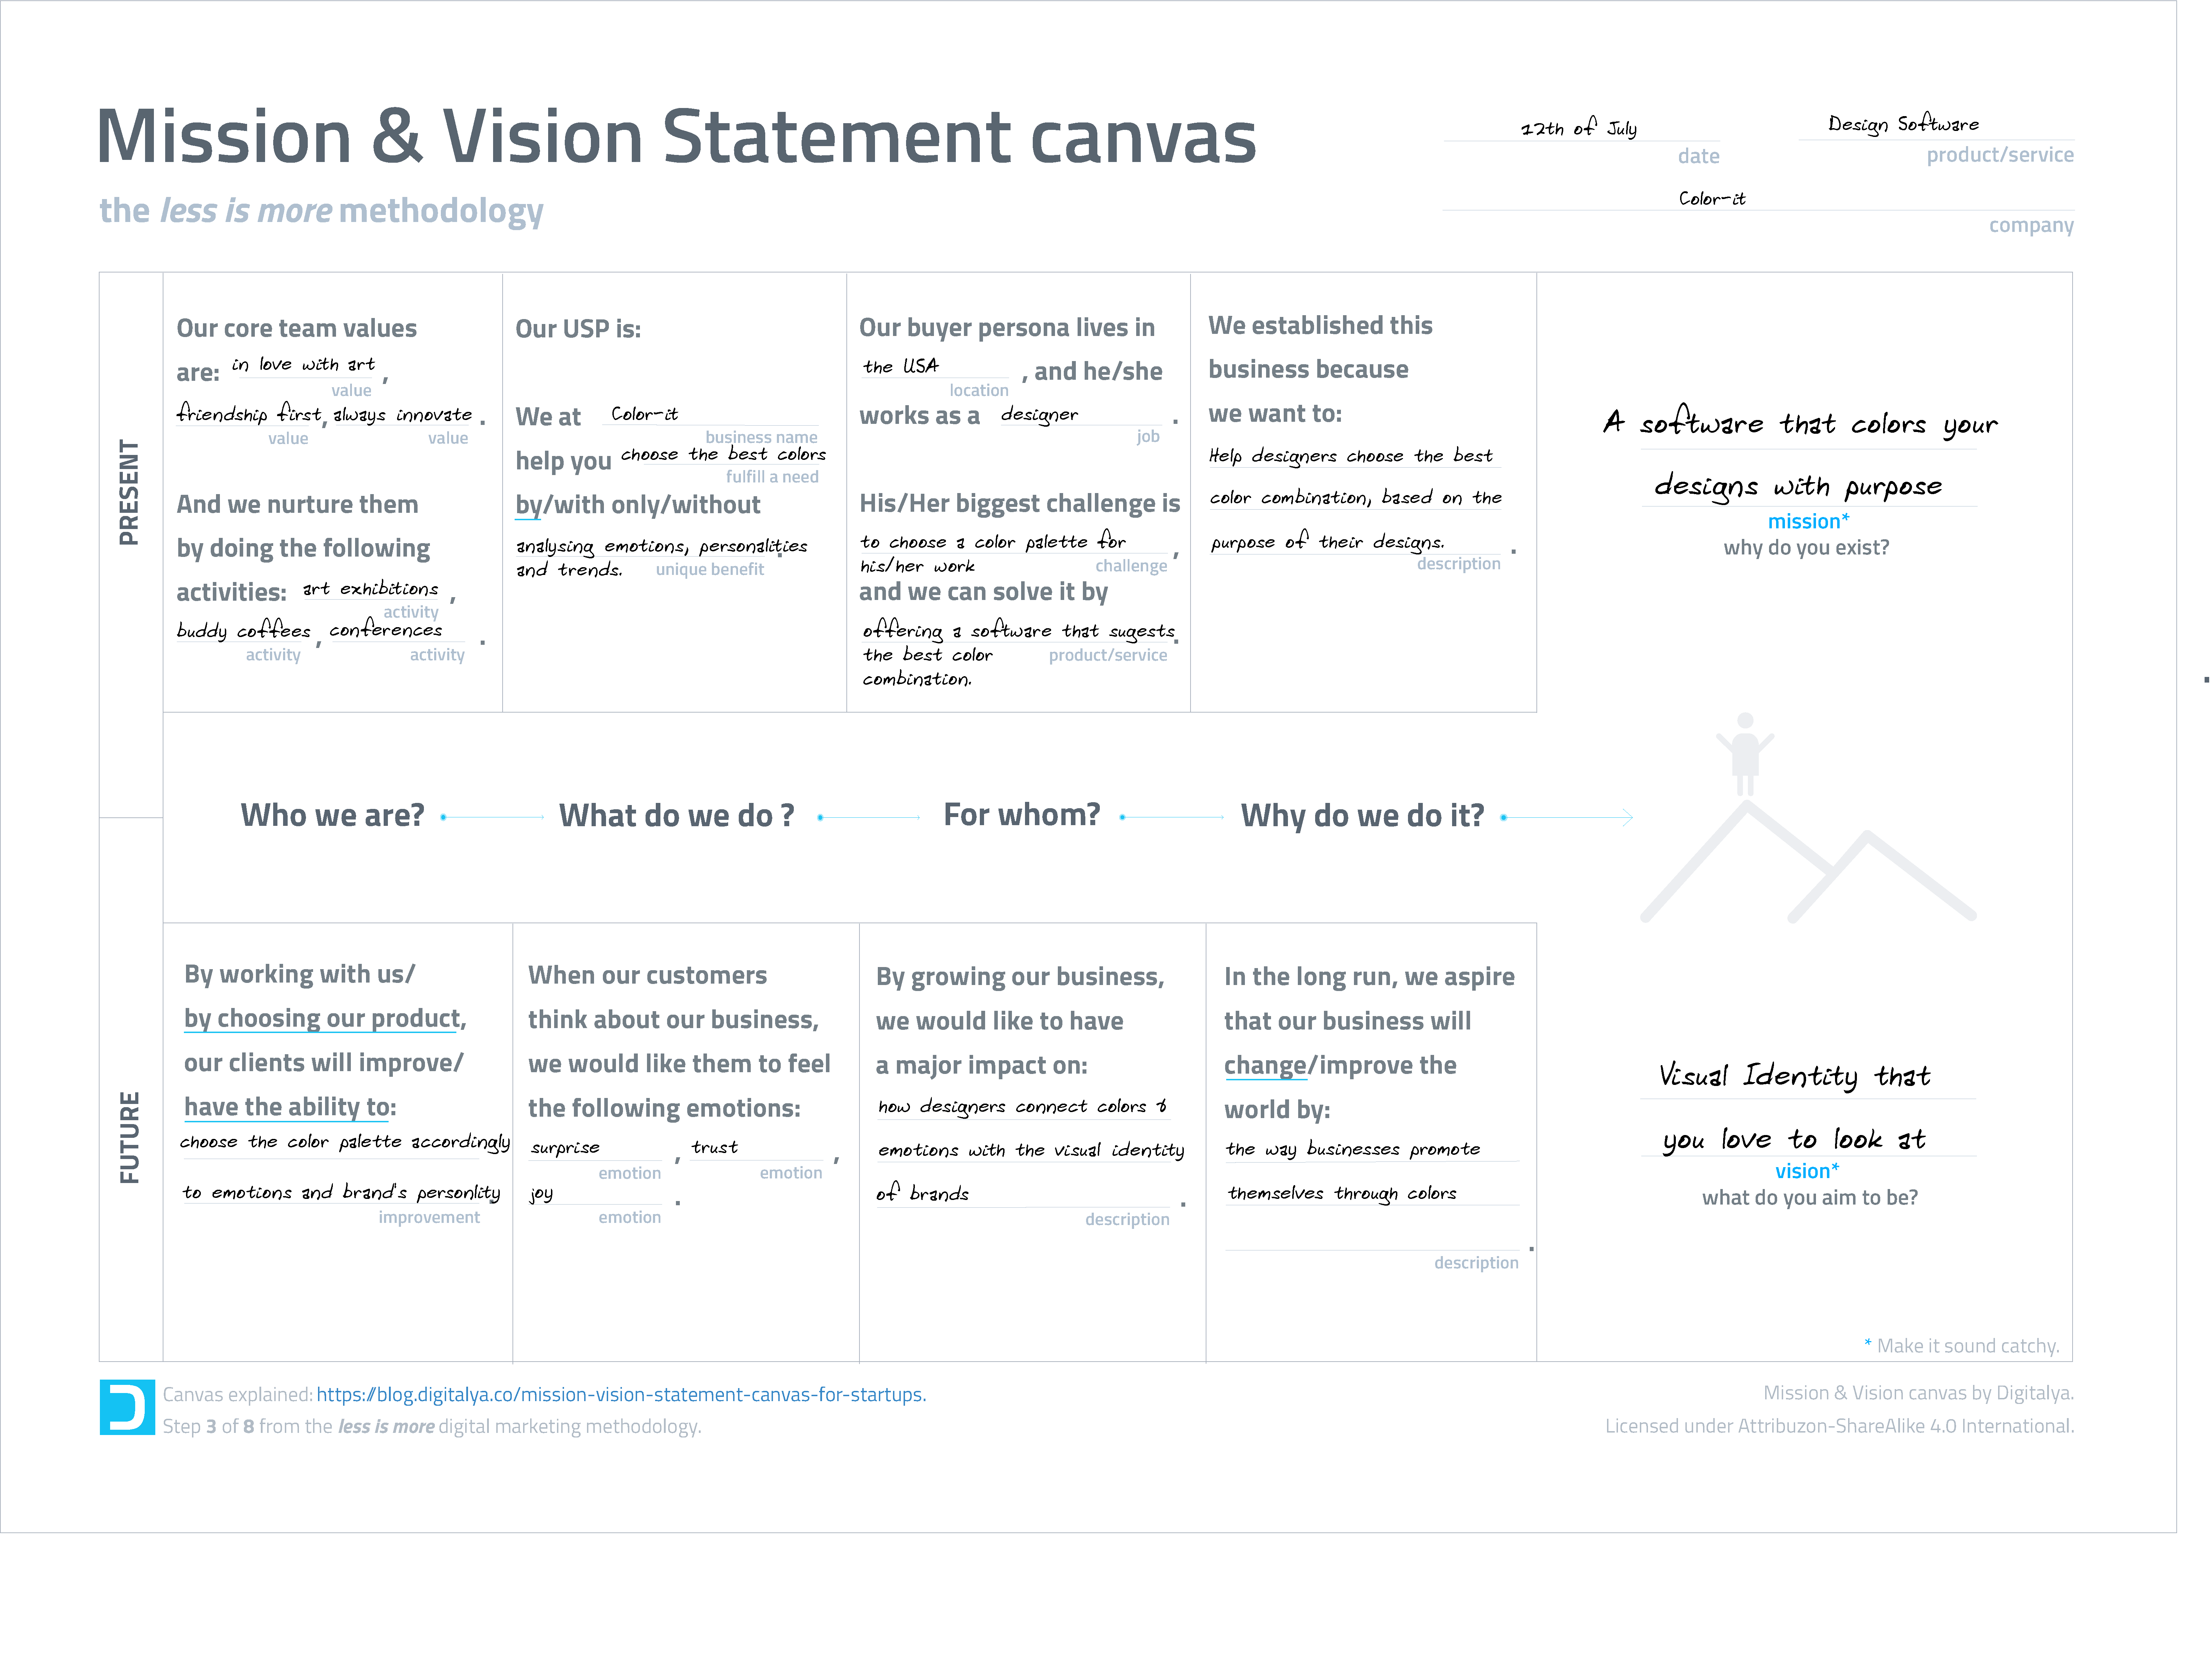 mission-vision-canvas-for-startups-example-final